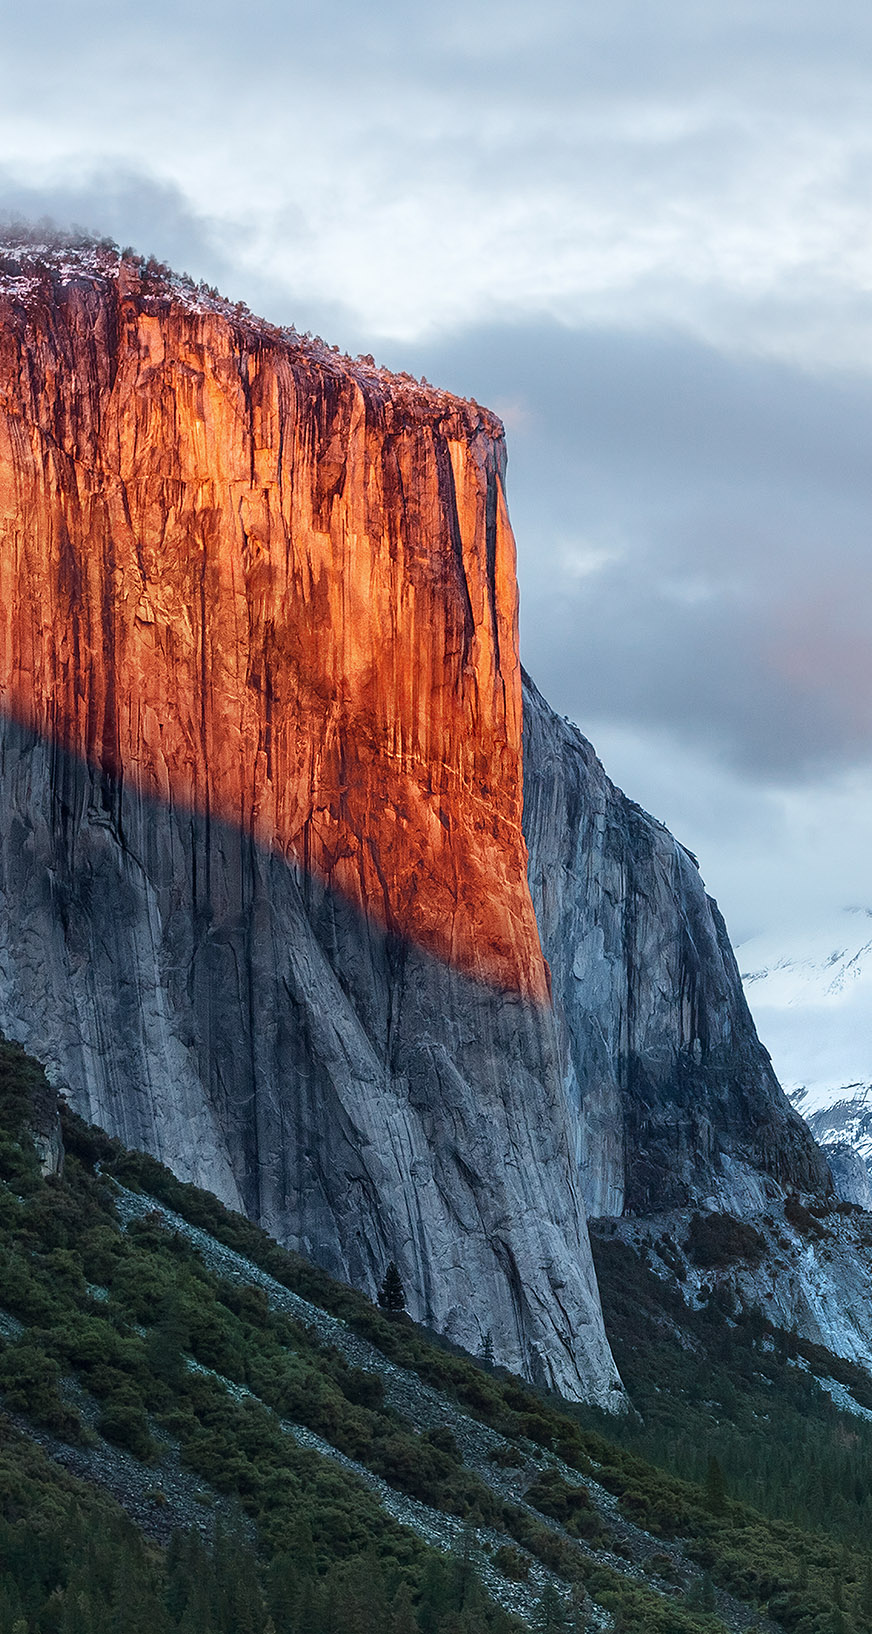 Dynamic Wallpaper Iphone X App Download The New El Capitan Wallpapers For Os X And Ios